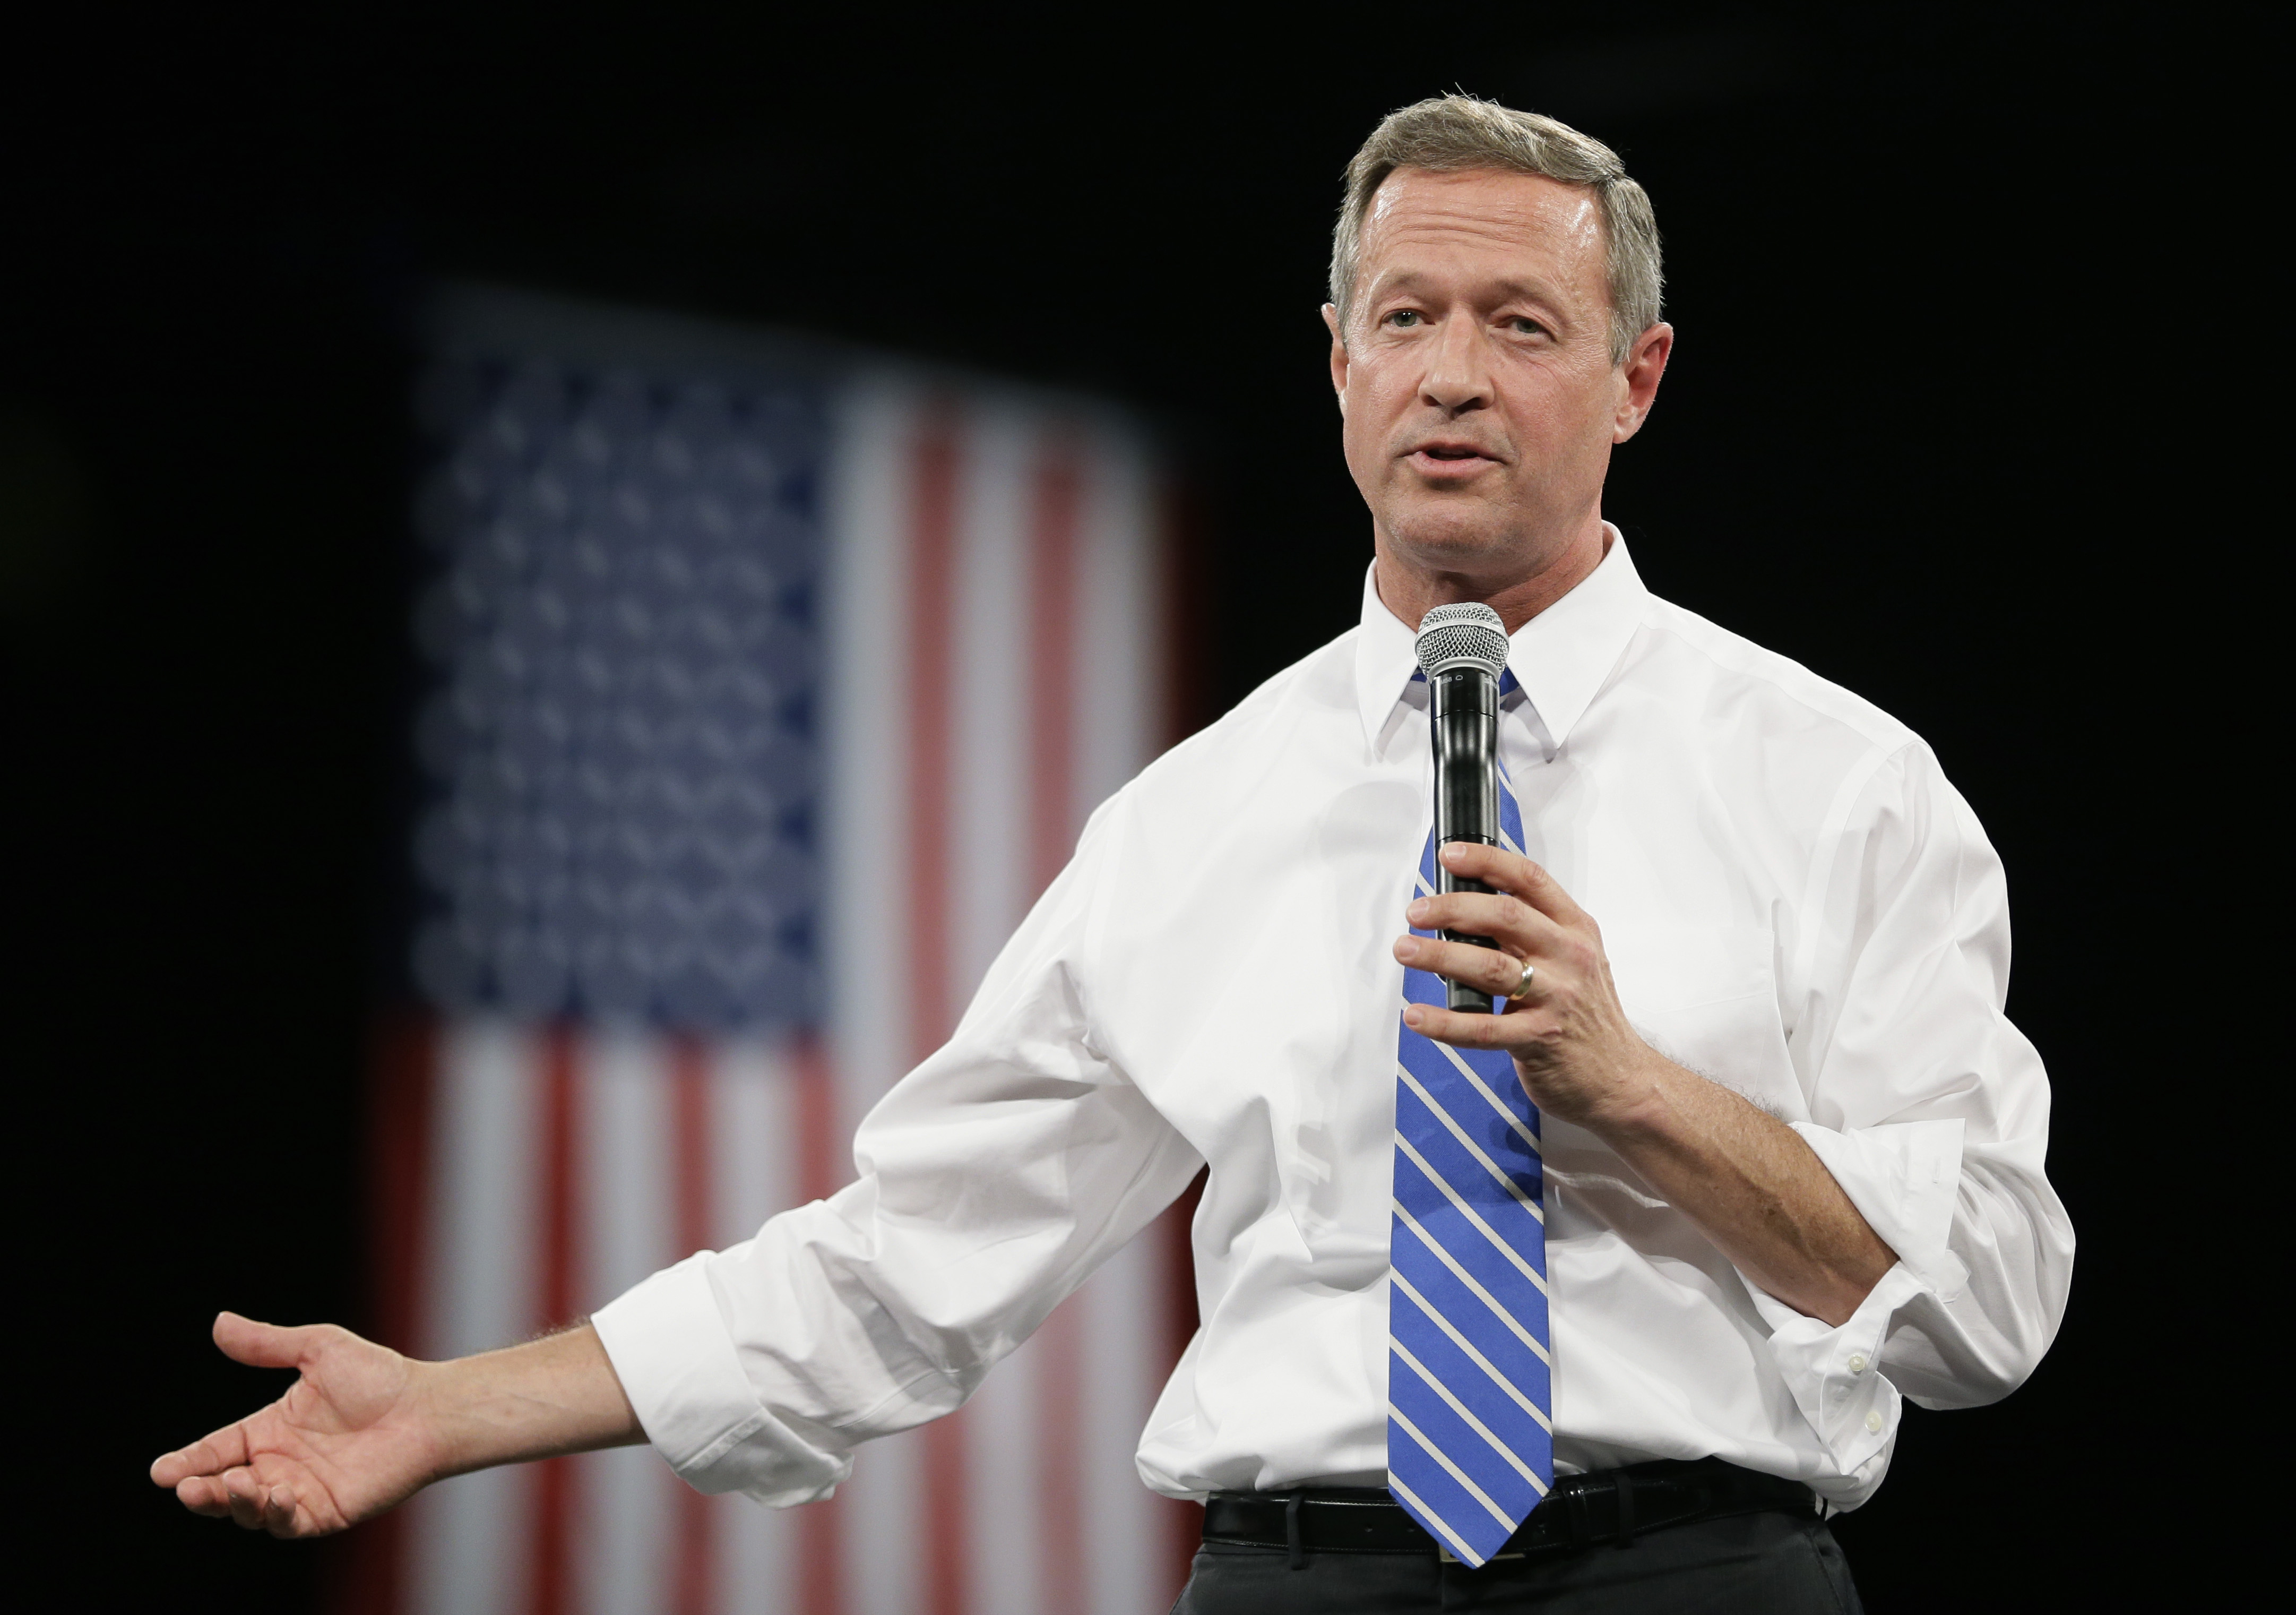 Ex-Md. governor O'Malley not running for DNC chair